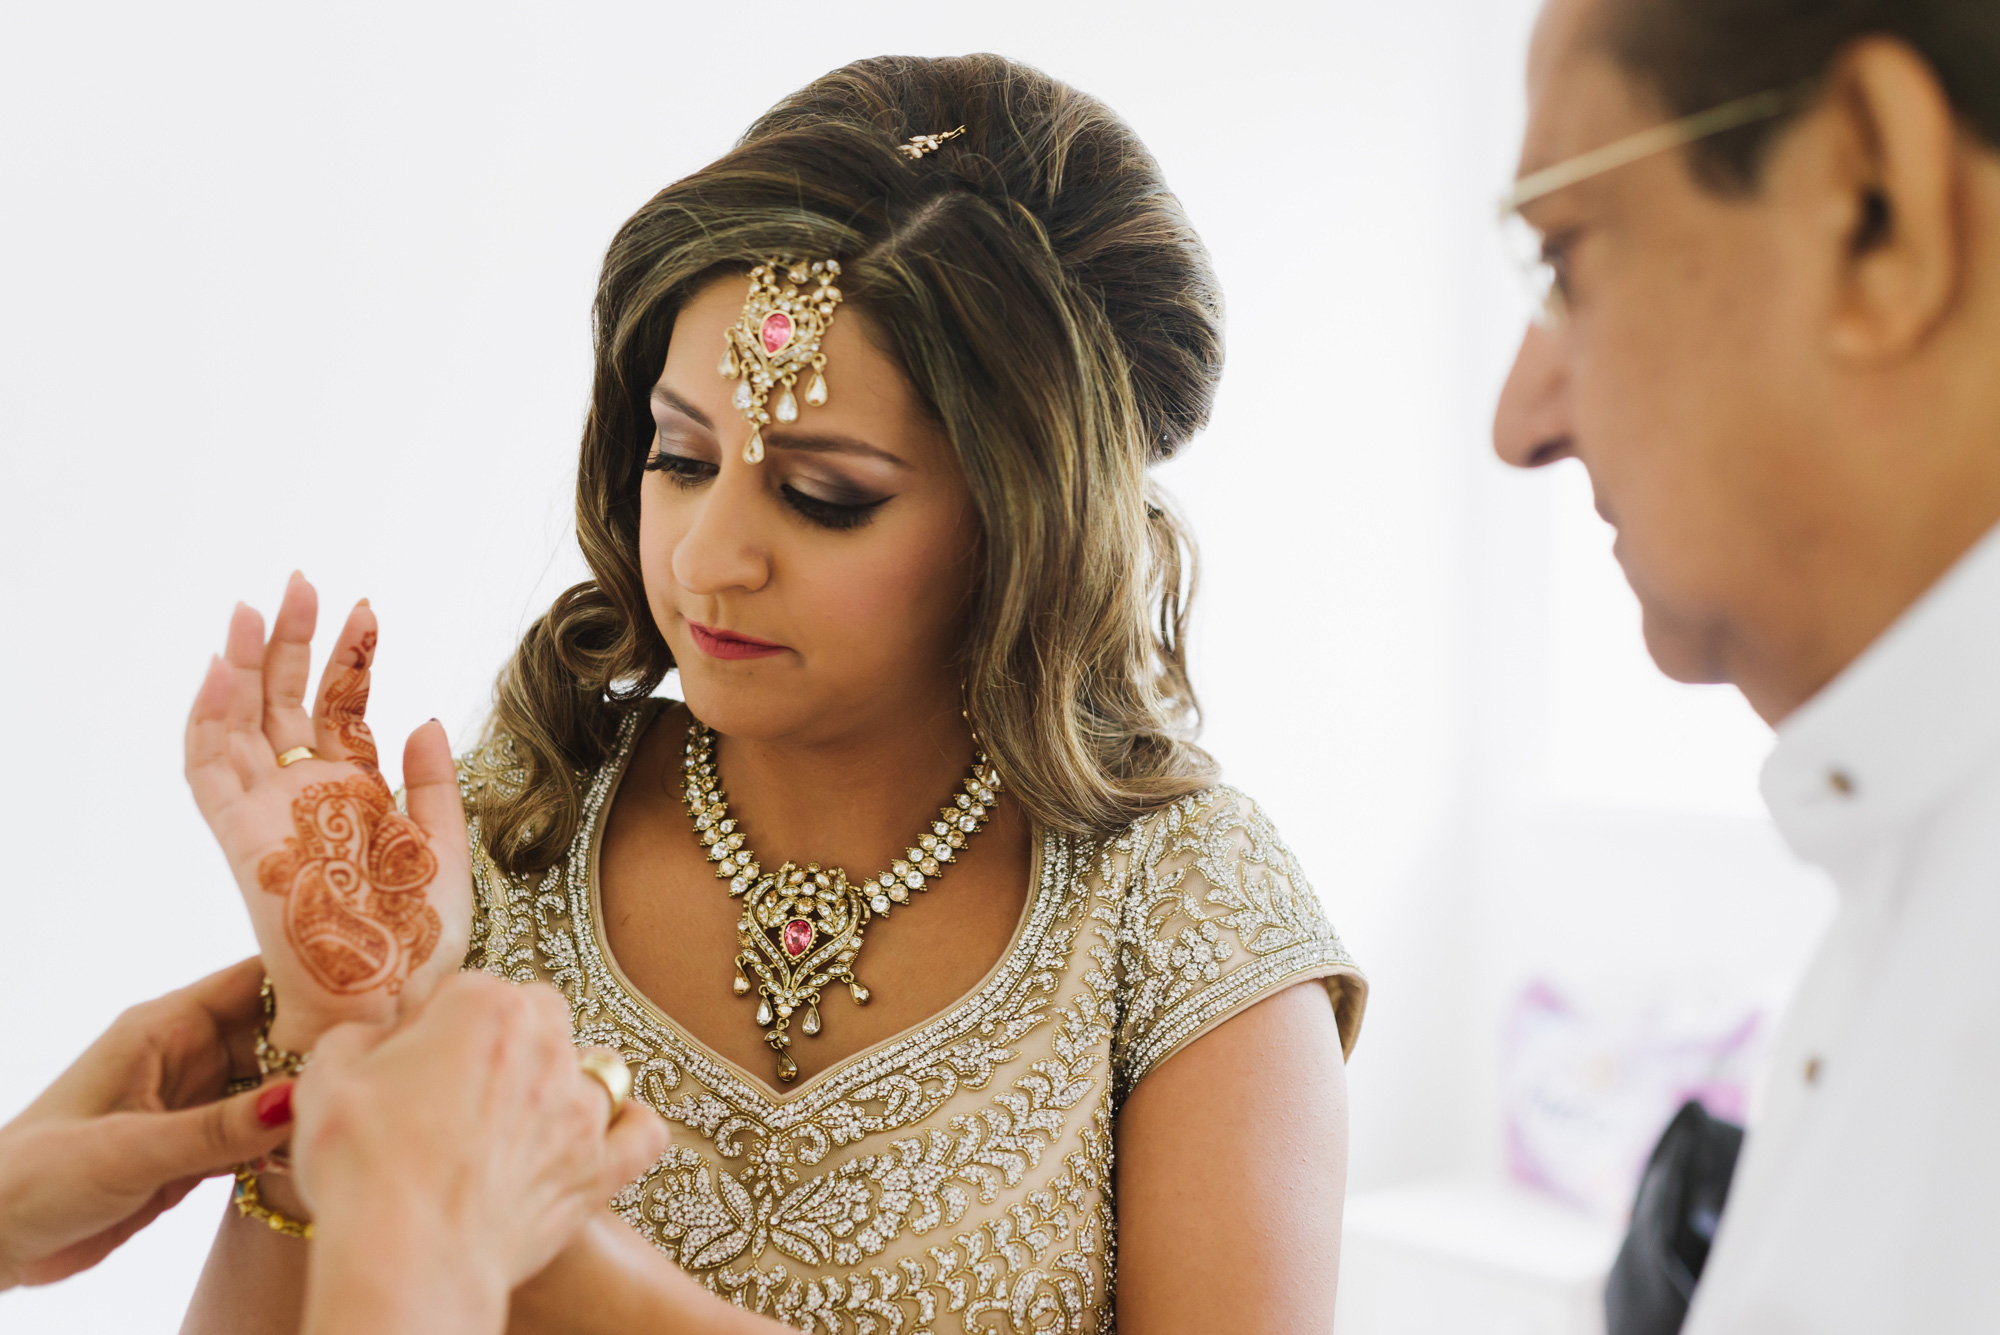 Indian Wedding Bride Getting Ready Sari Solihull